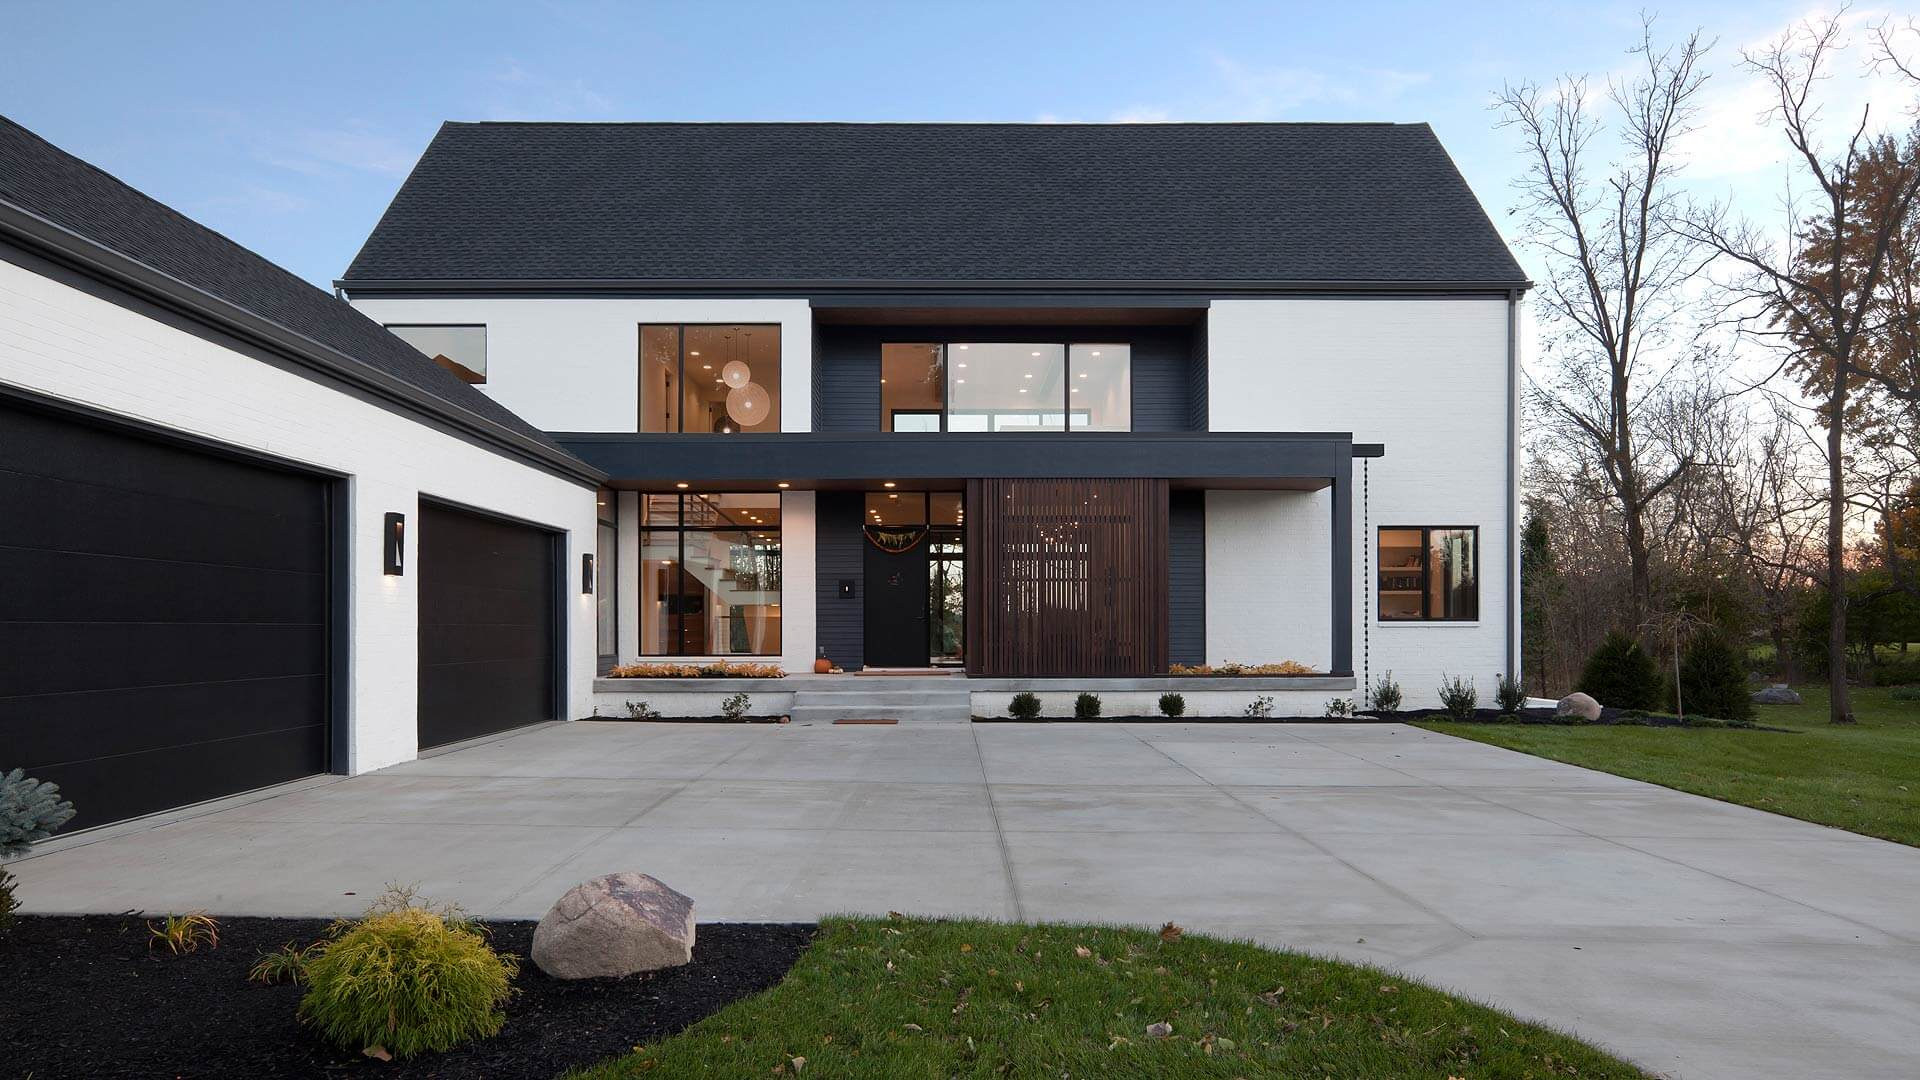 On approach, home presents a simple, semi-formal geometry featuring oversized windows, wood screenwall, with modern flat roof and rainchain detail - Towne Oak Estates, Steffe Drive, Carmel, Indiana - Christopher Short, Derek Mills - Indianapolis Architects, HAUS | Architecture For Modern Lifestyles